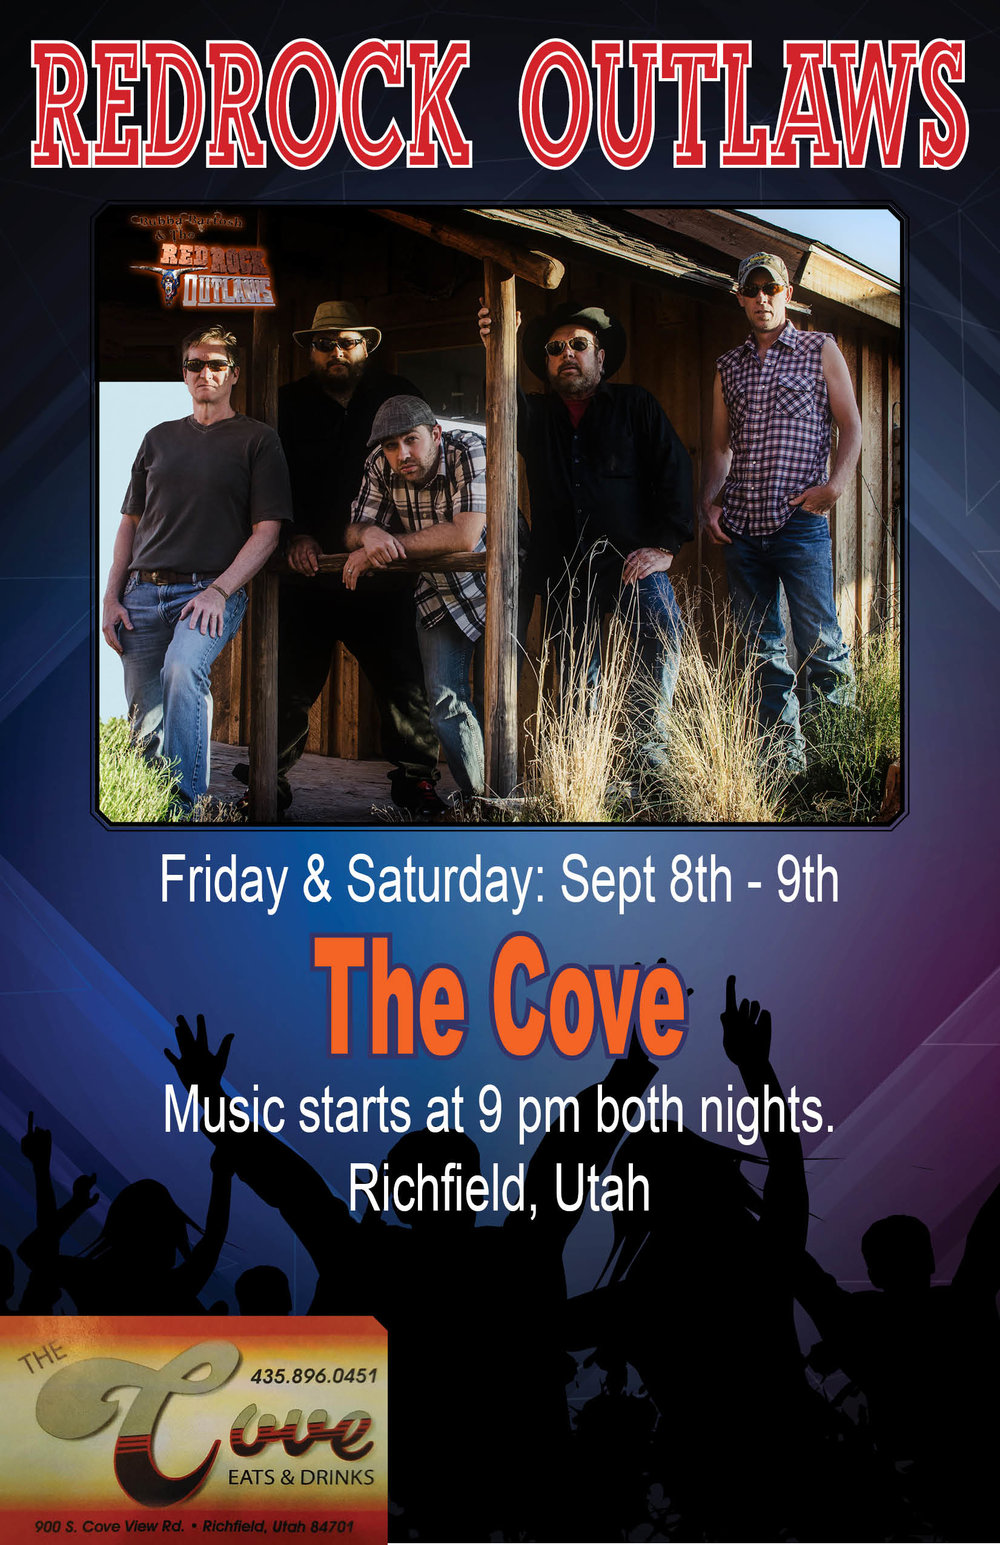 The Cove Poster 11x17.jpg